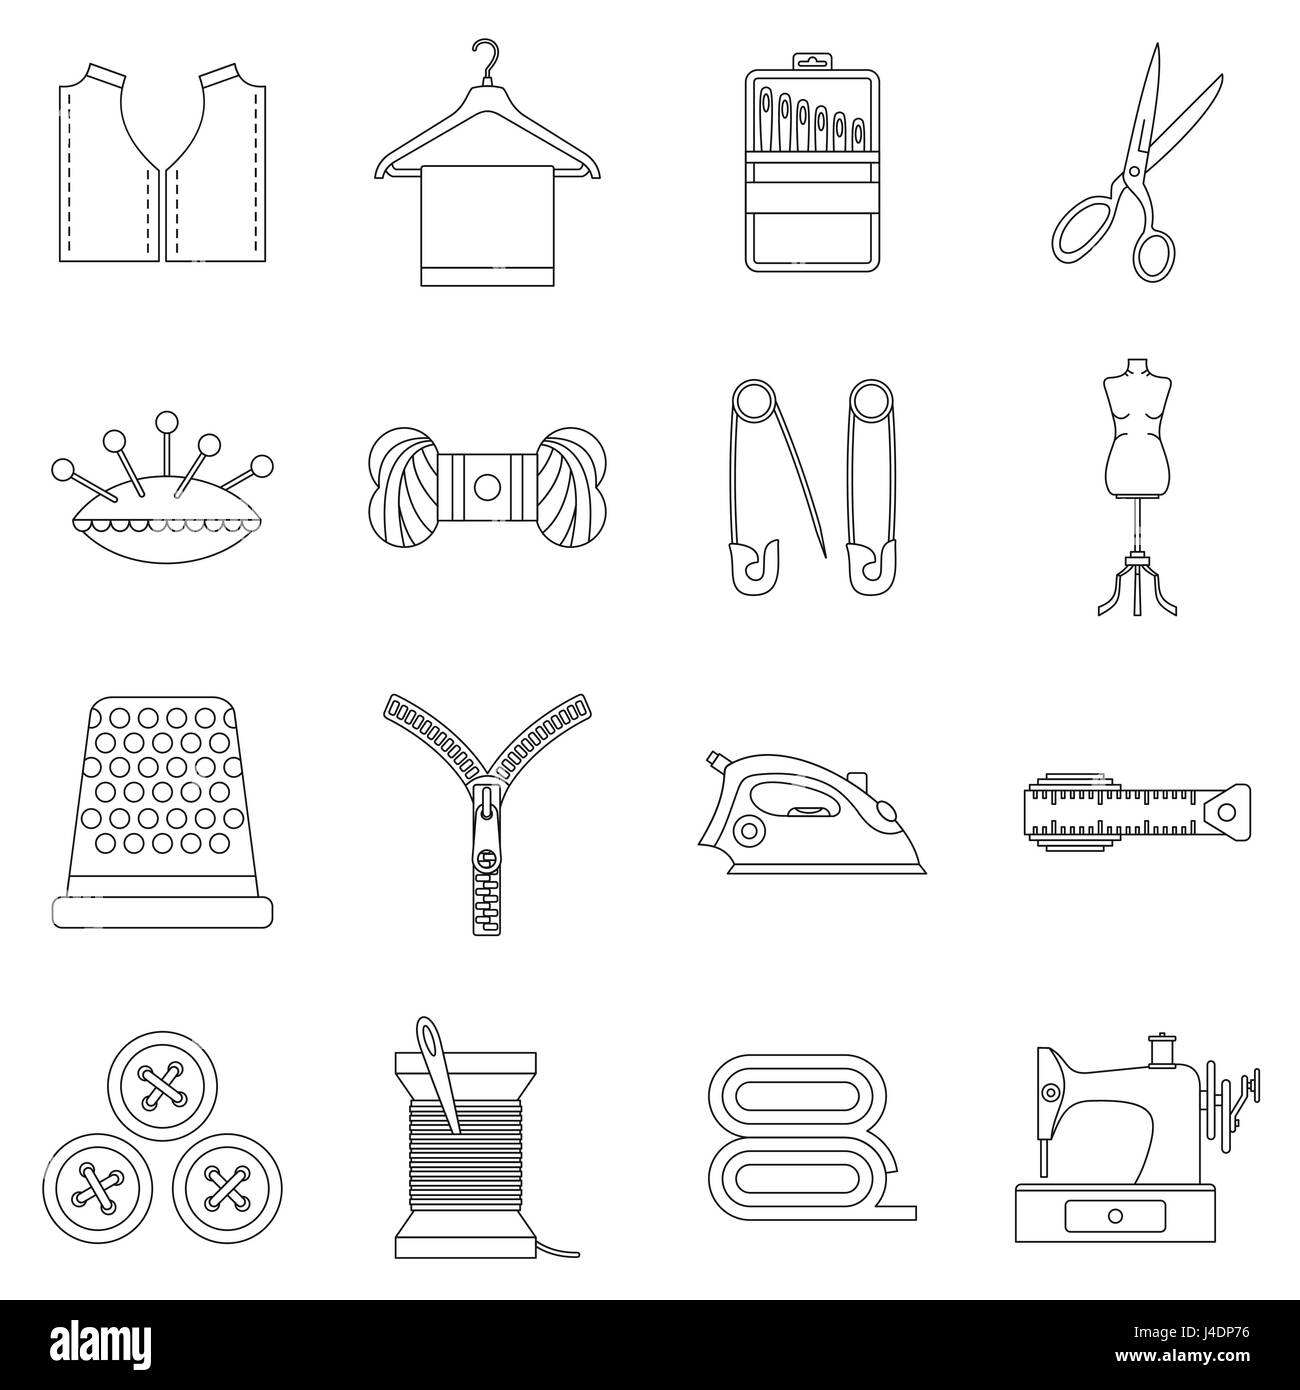 Sewing icons set, outline style - Stock Image